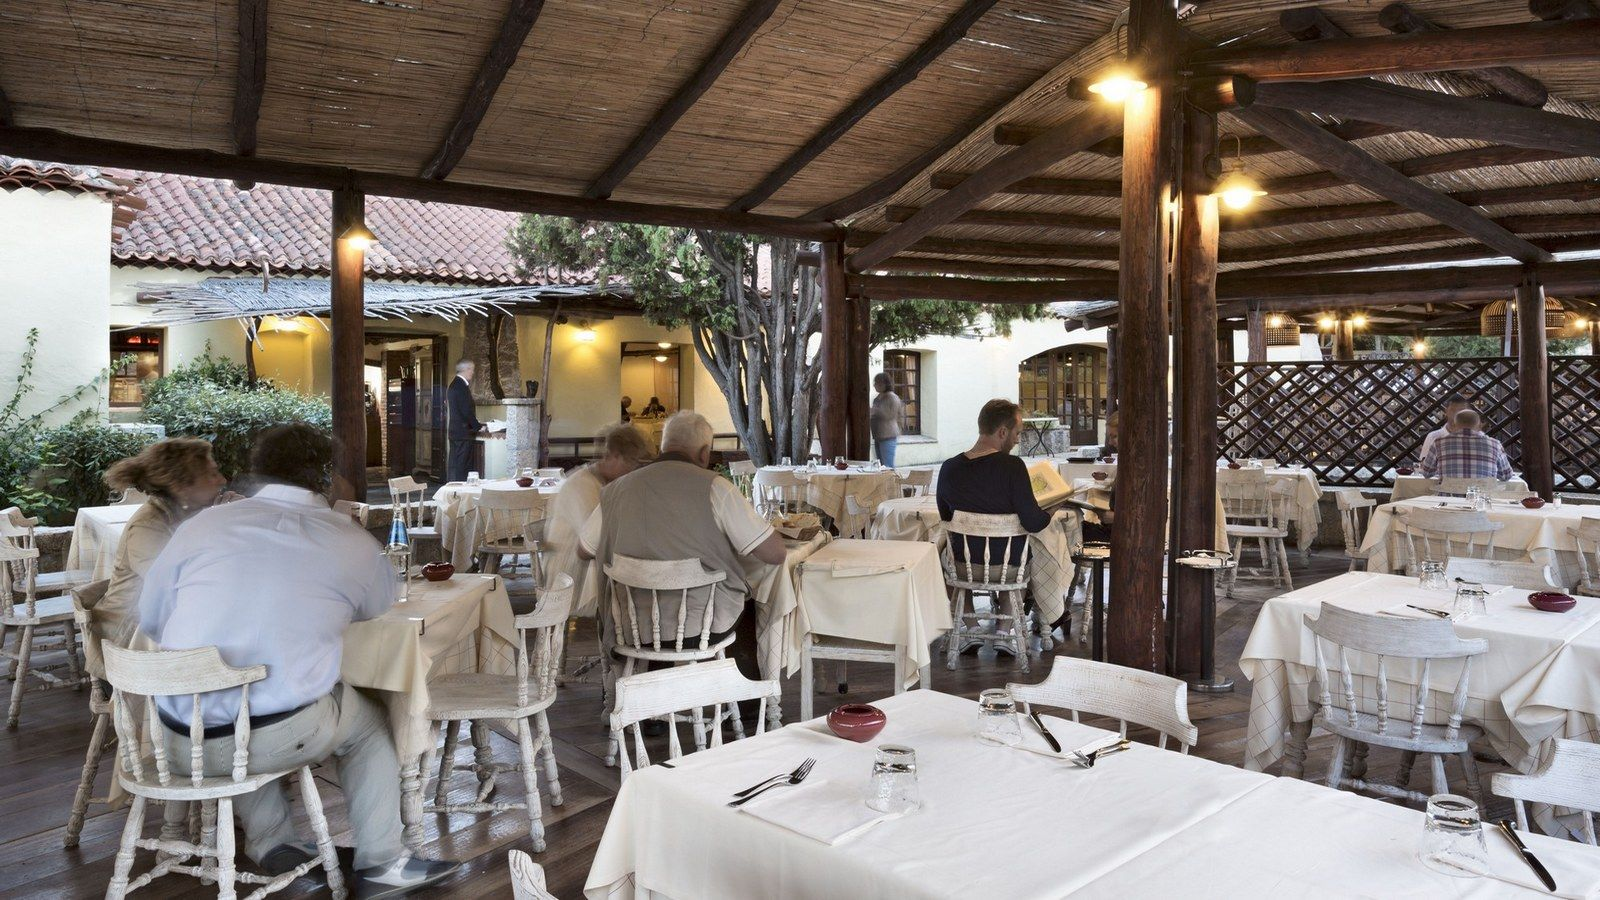 Pomodoro Restaurant outside terrace